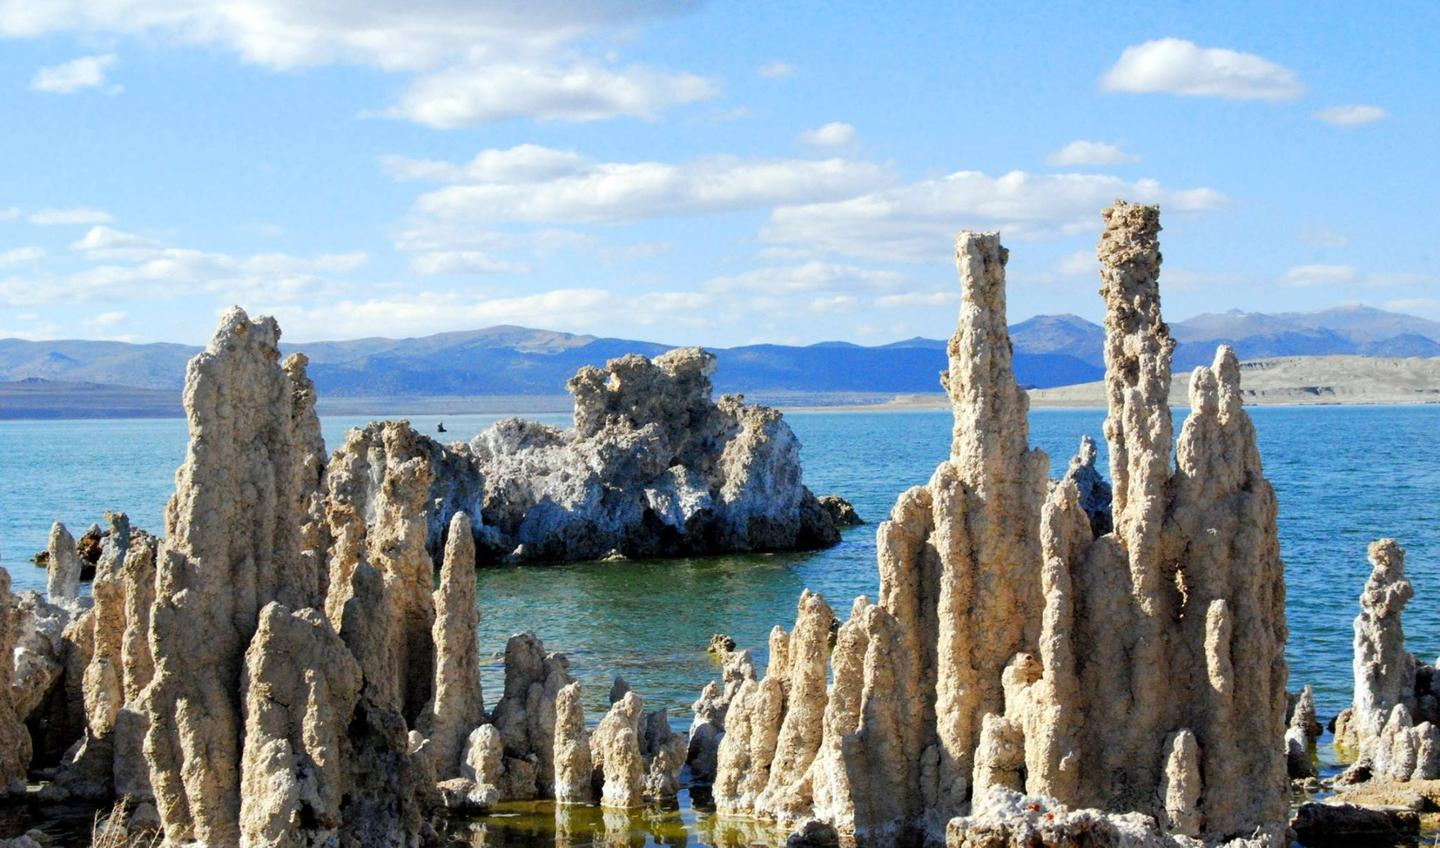 Mono Lake, California is similar to some environments in the Solar System where life may exist